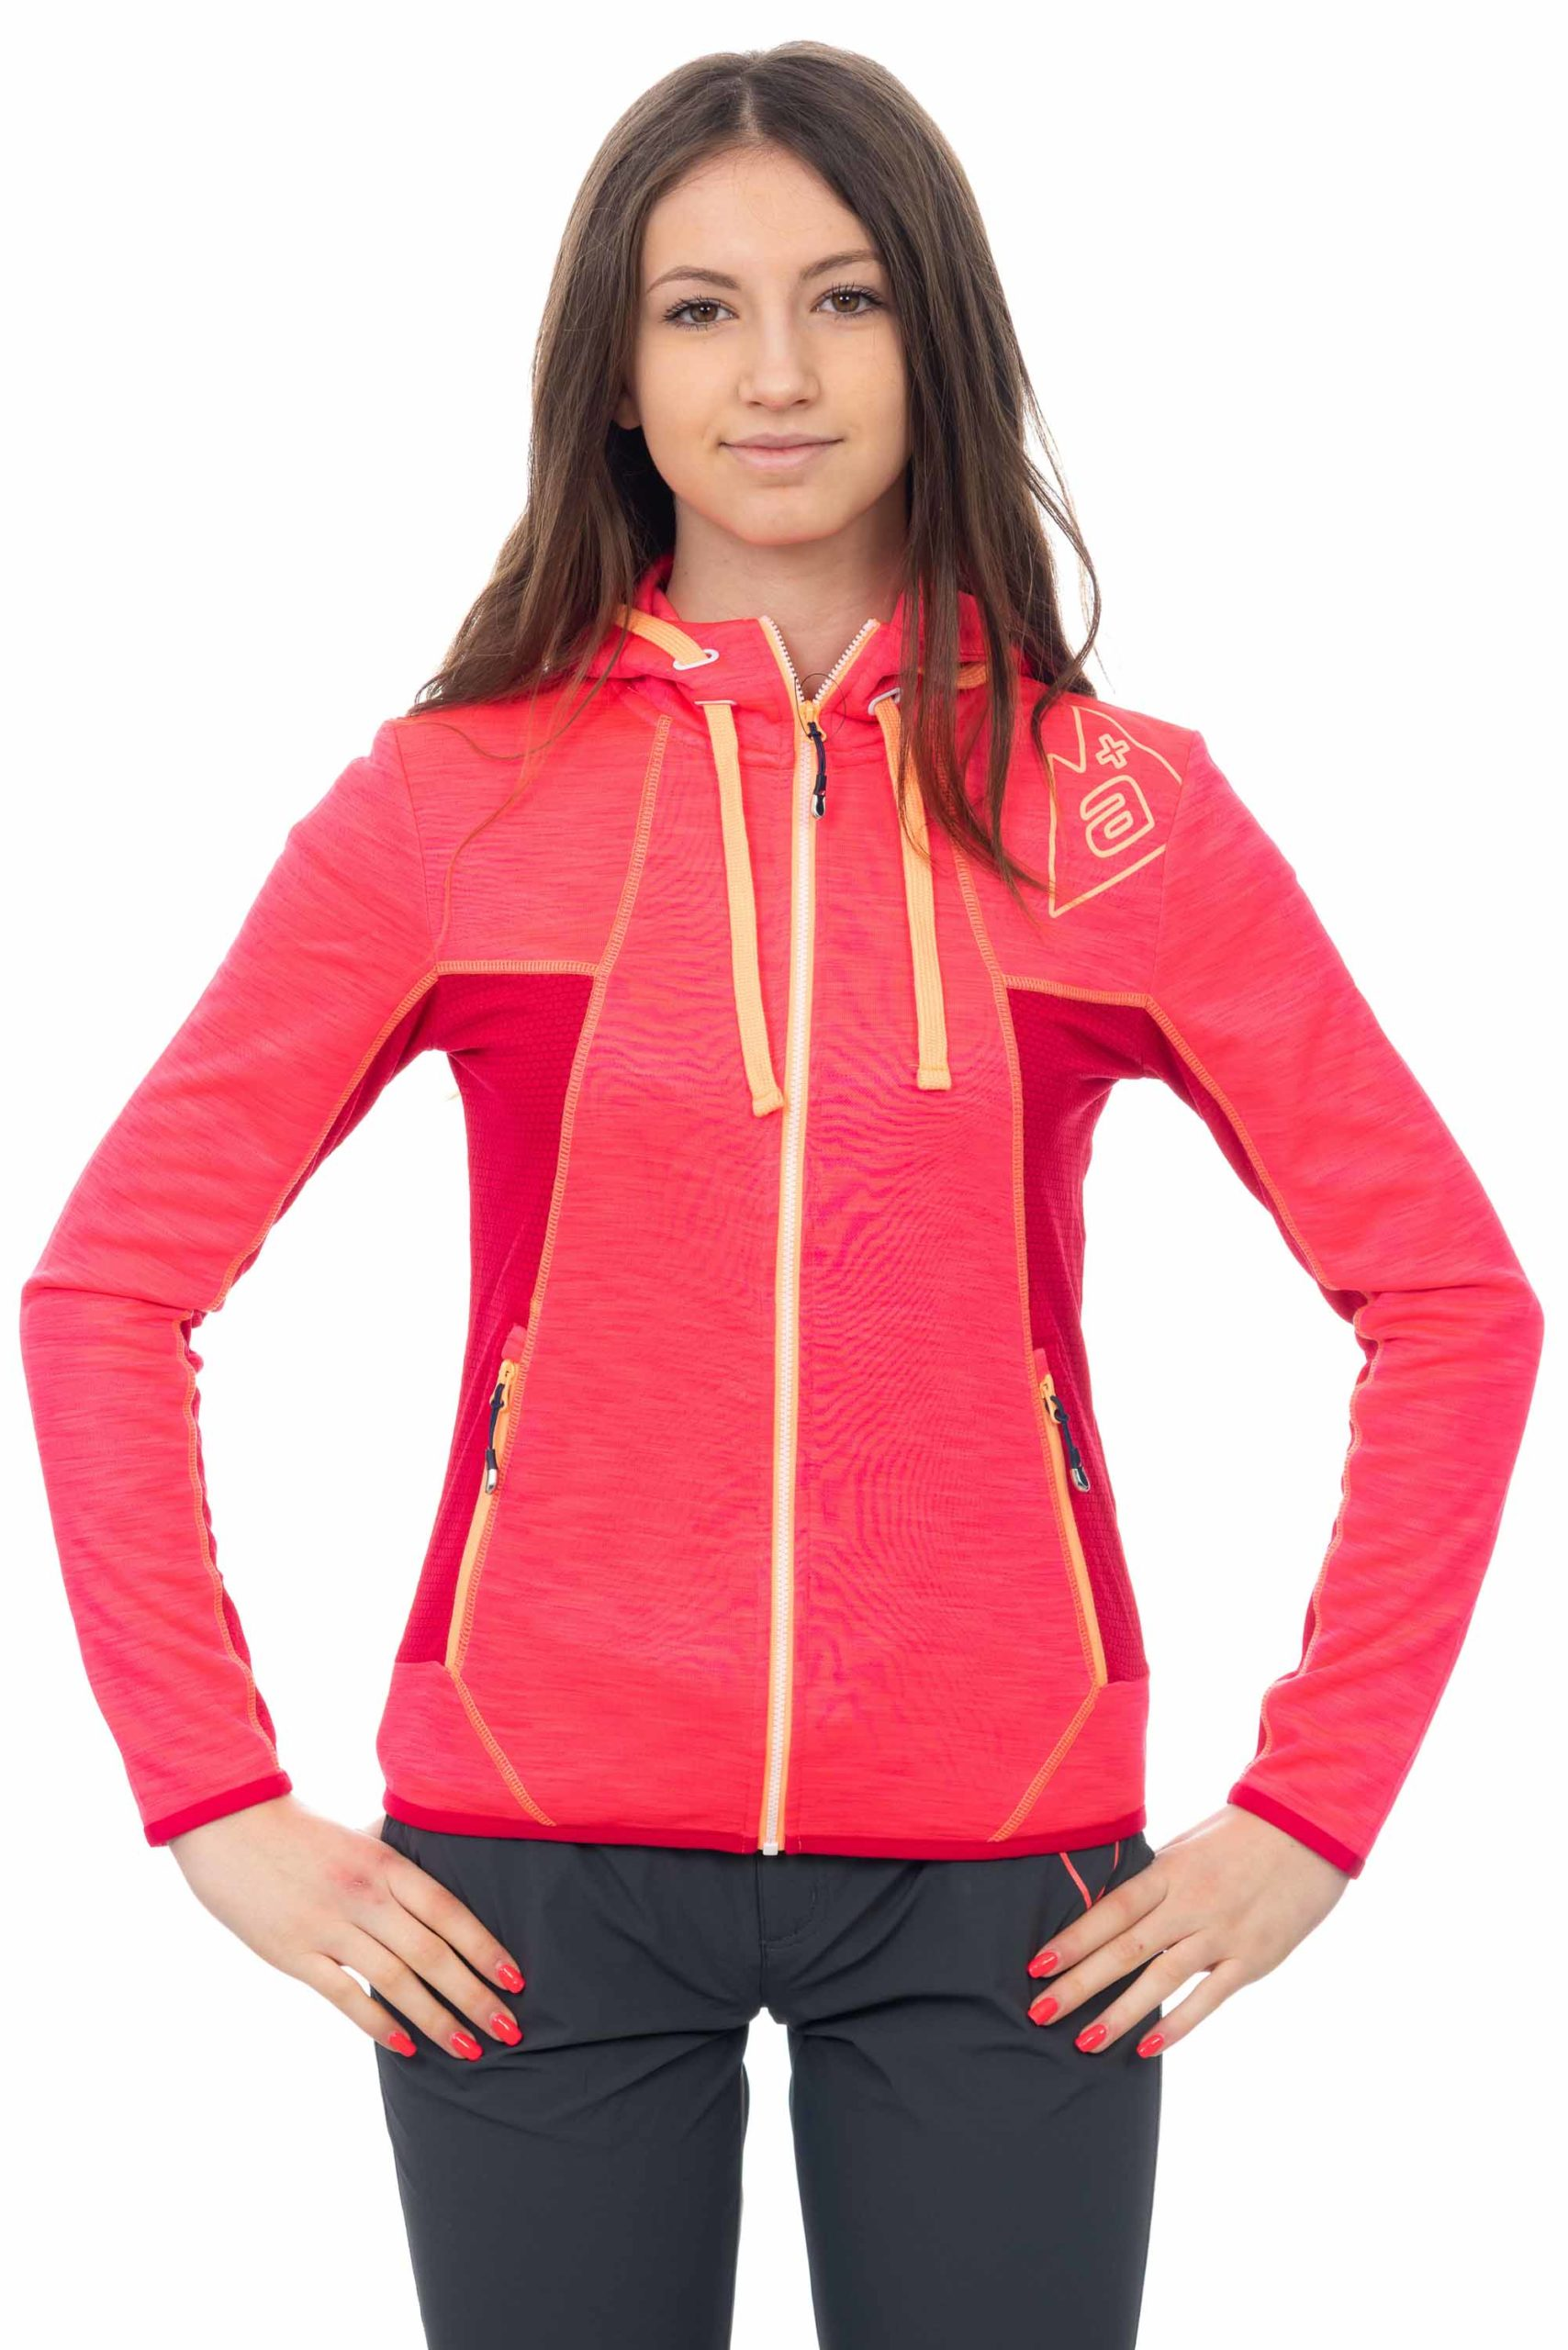 Felpa donna stretch outdoor